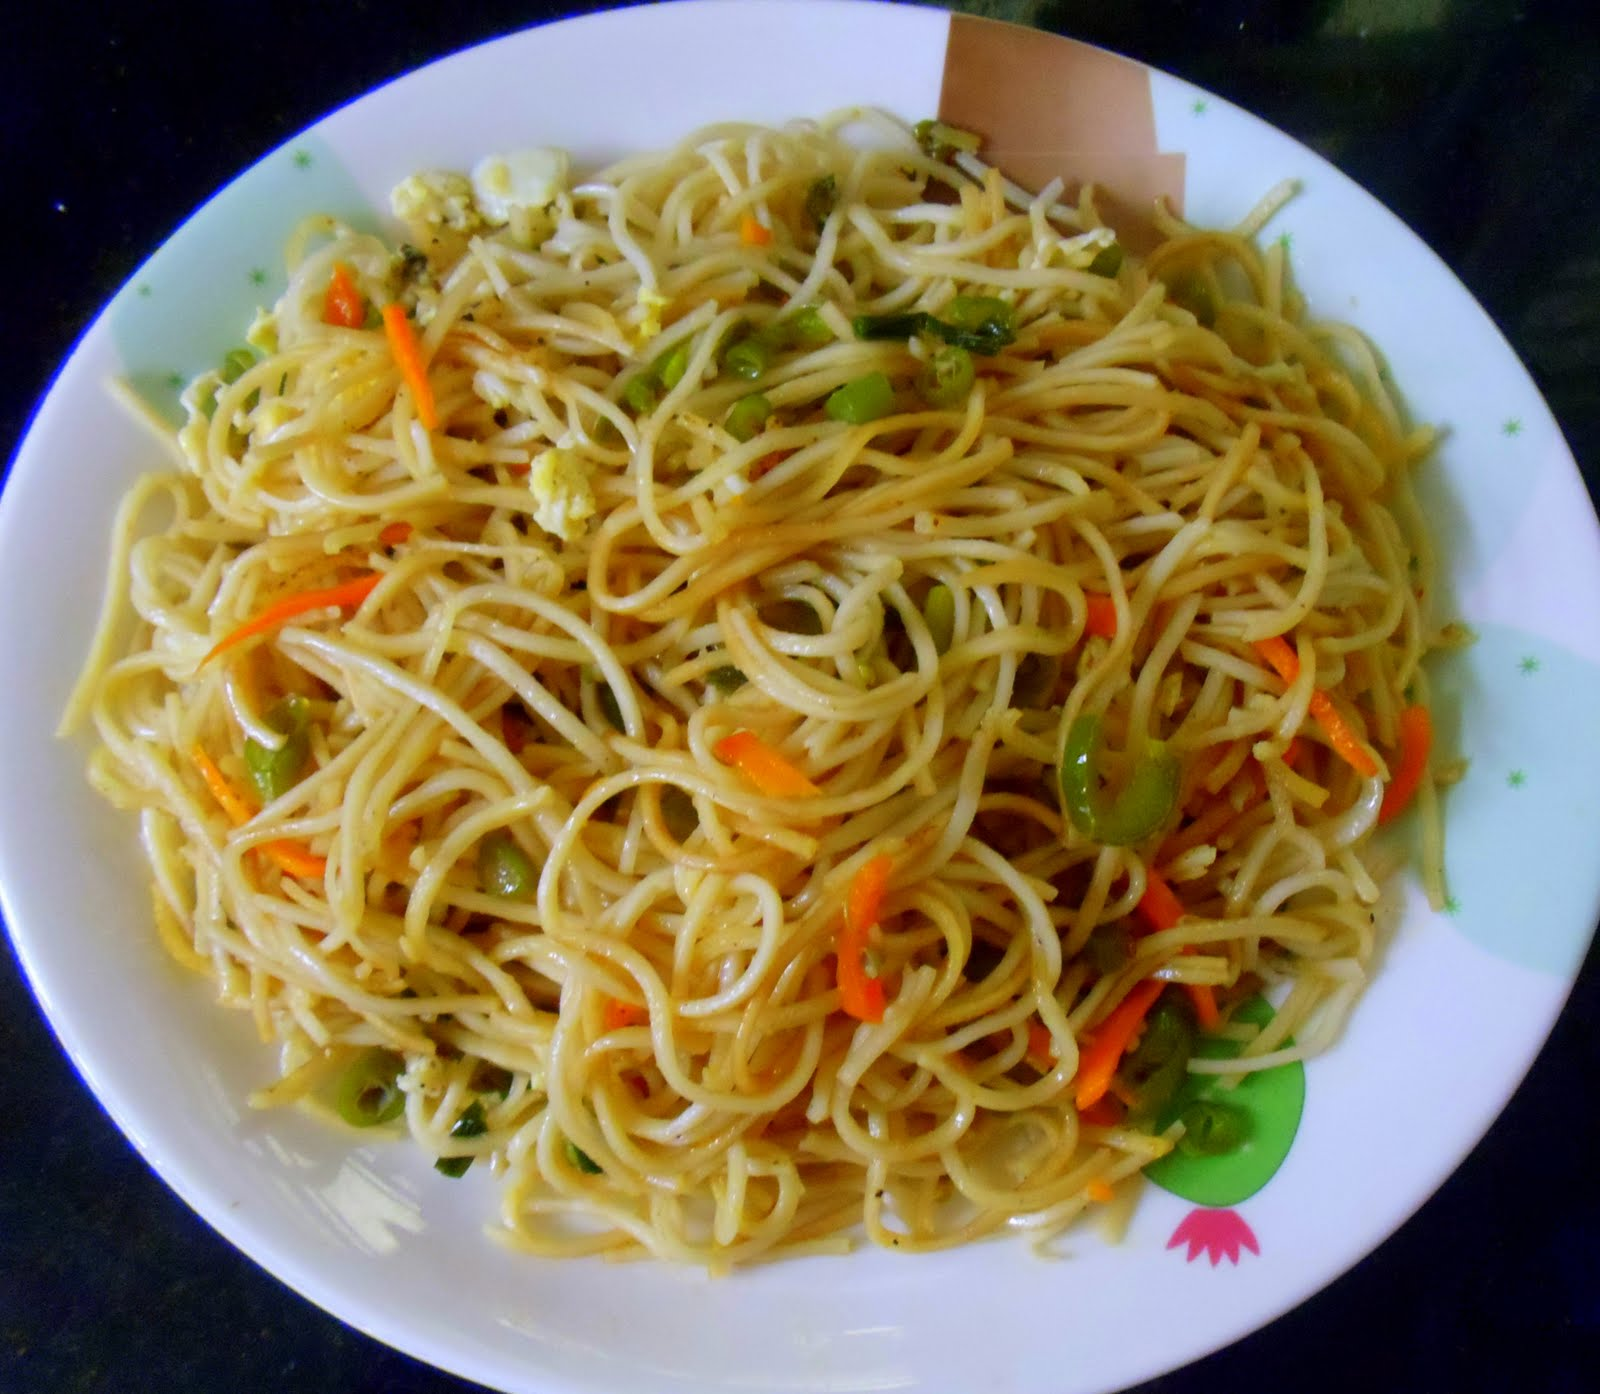 images of noodles - photo #14